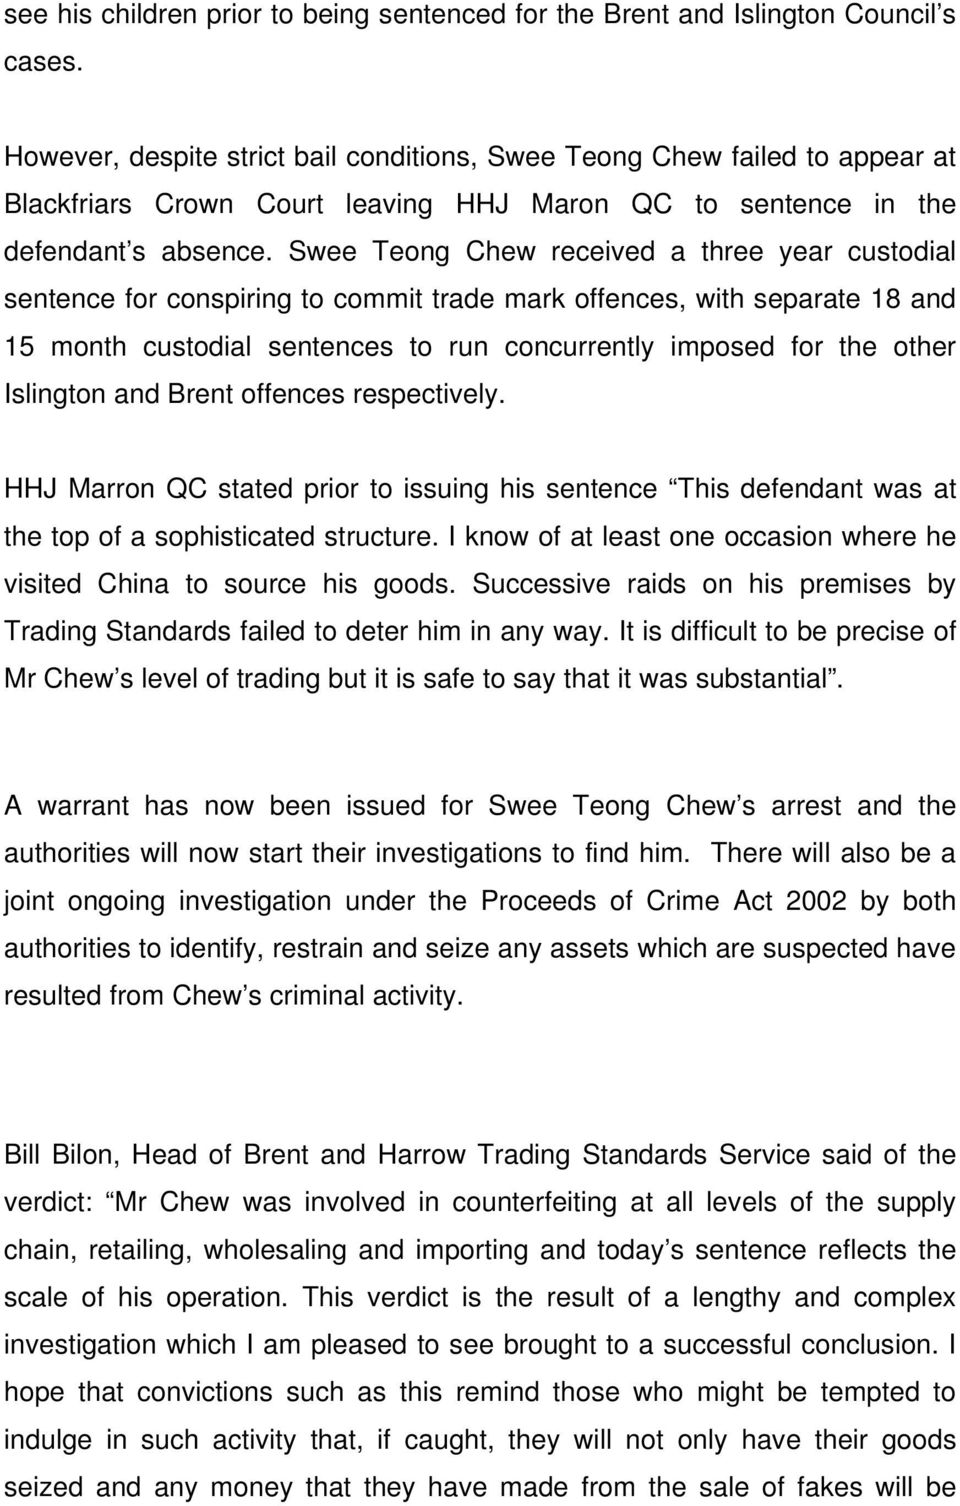 Swee Teong Chew received a three year custodial sentence for conspiring to commit trade mark offences, with separate 18 and 15 month custodial sentences to run concurrently imposed for the other